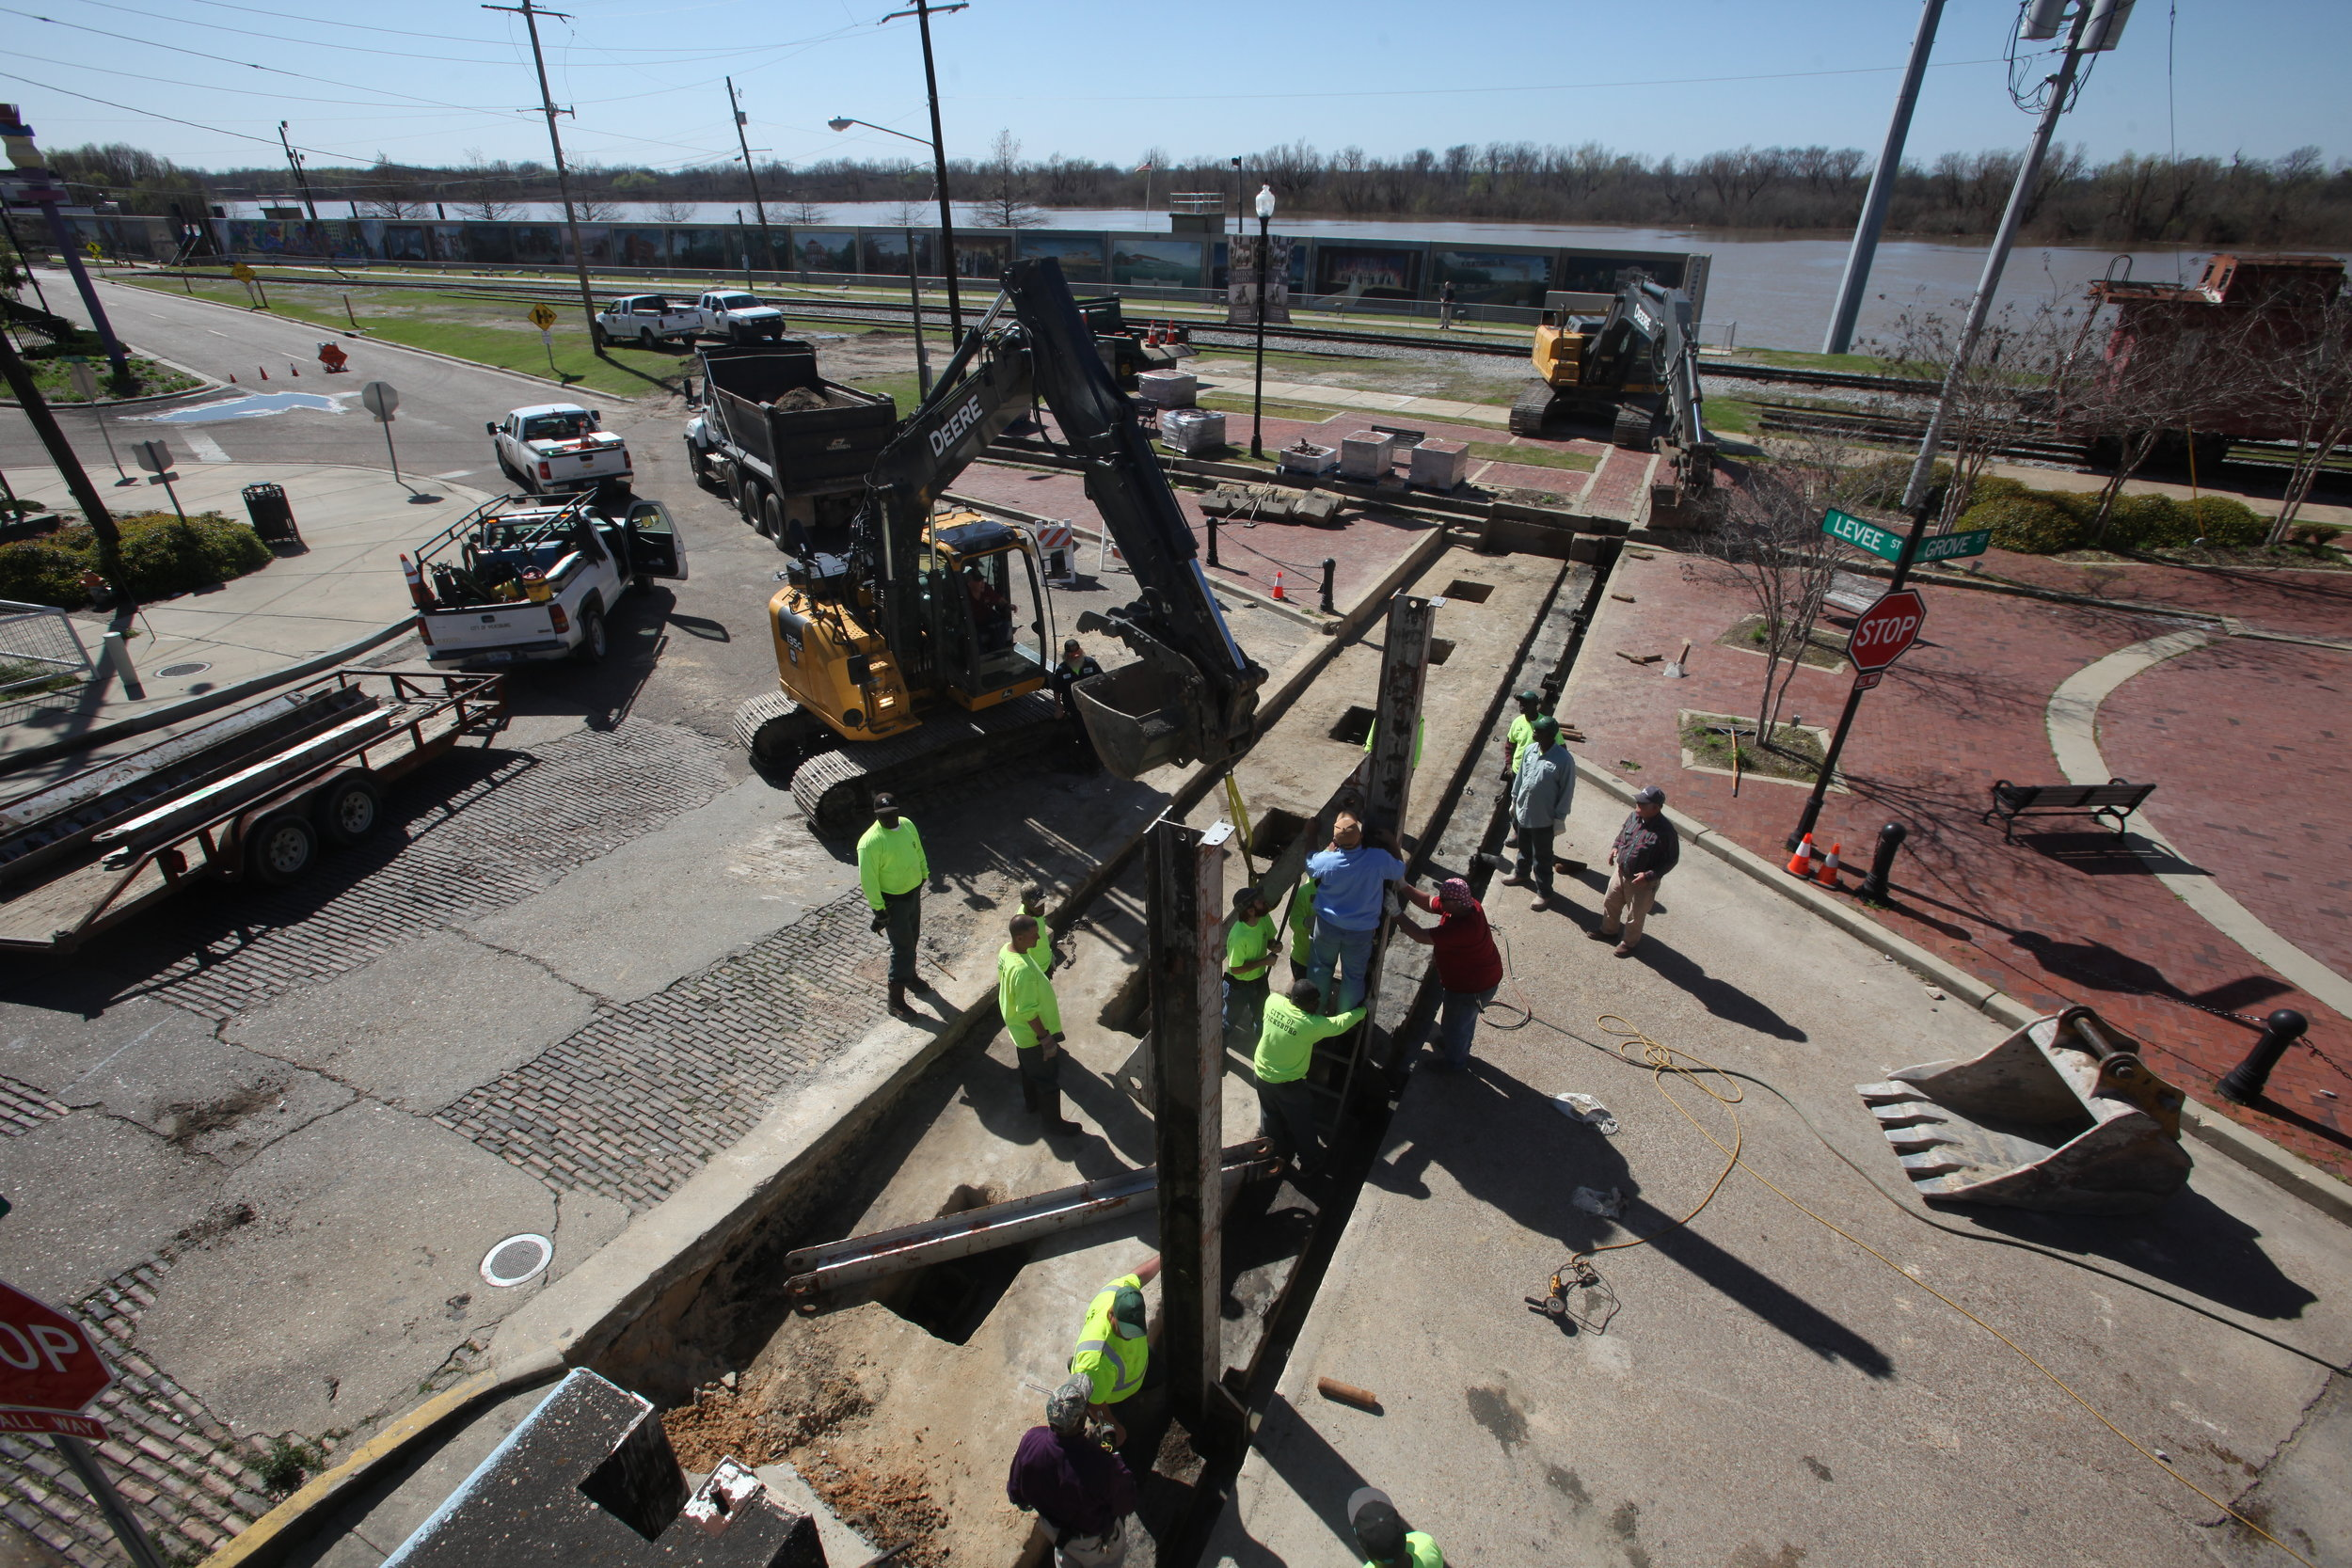 Workers with the City of Vicksburg work to install the Levee Street flood wall Tuesday. The Mississippi River at Vicksburg is predicted to crest at 50.5 feet at Vicksburg on March 17th. (Courtland Wells/The Vicksburg Post, via AP)